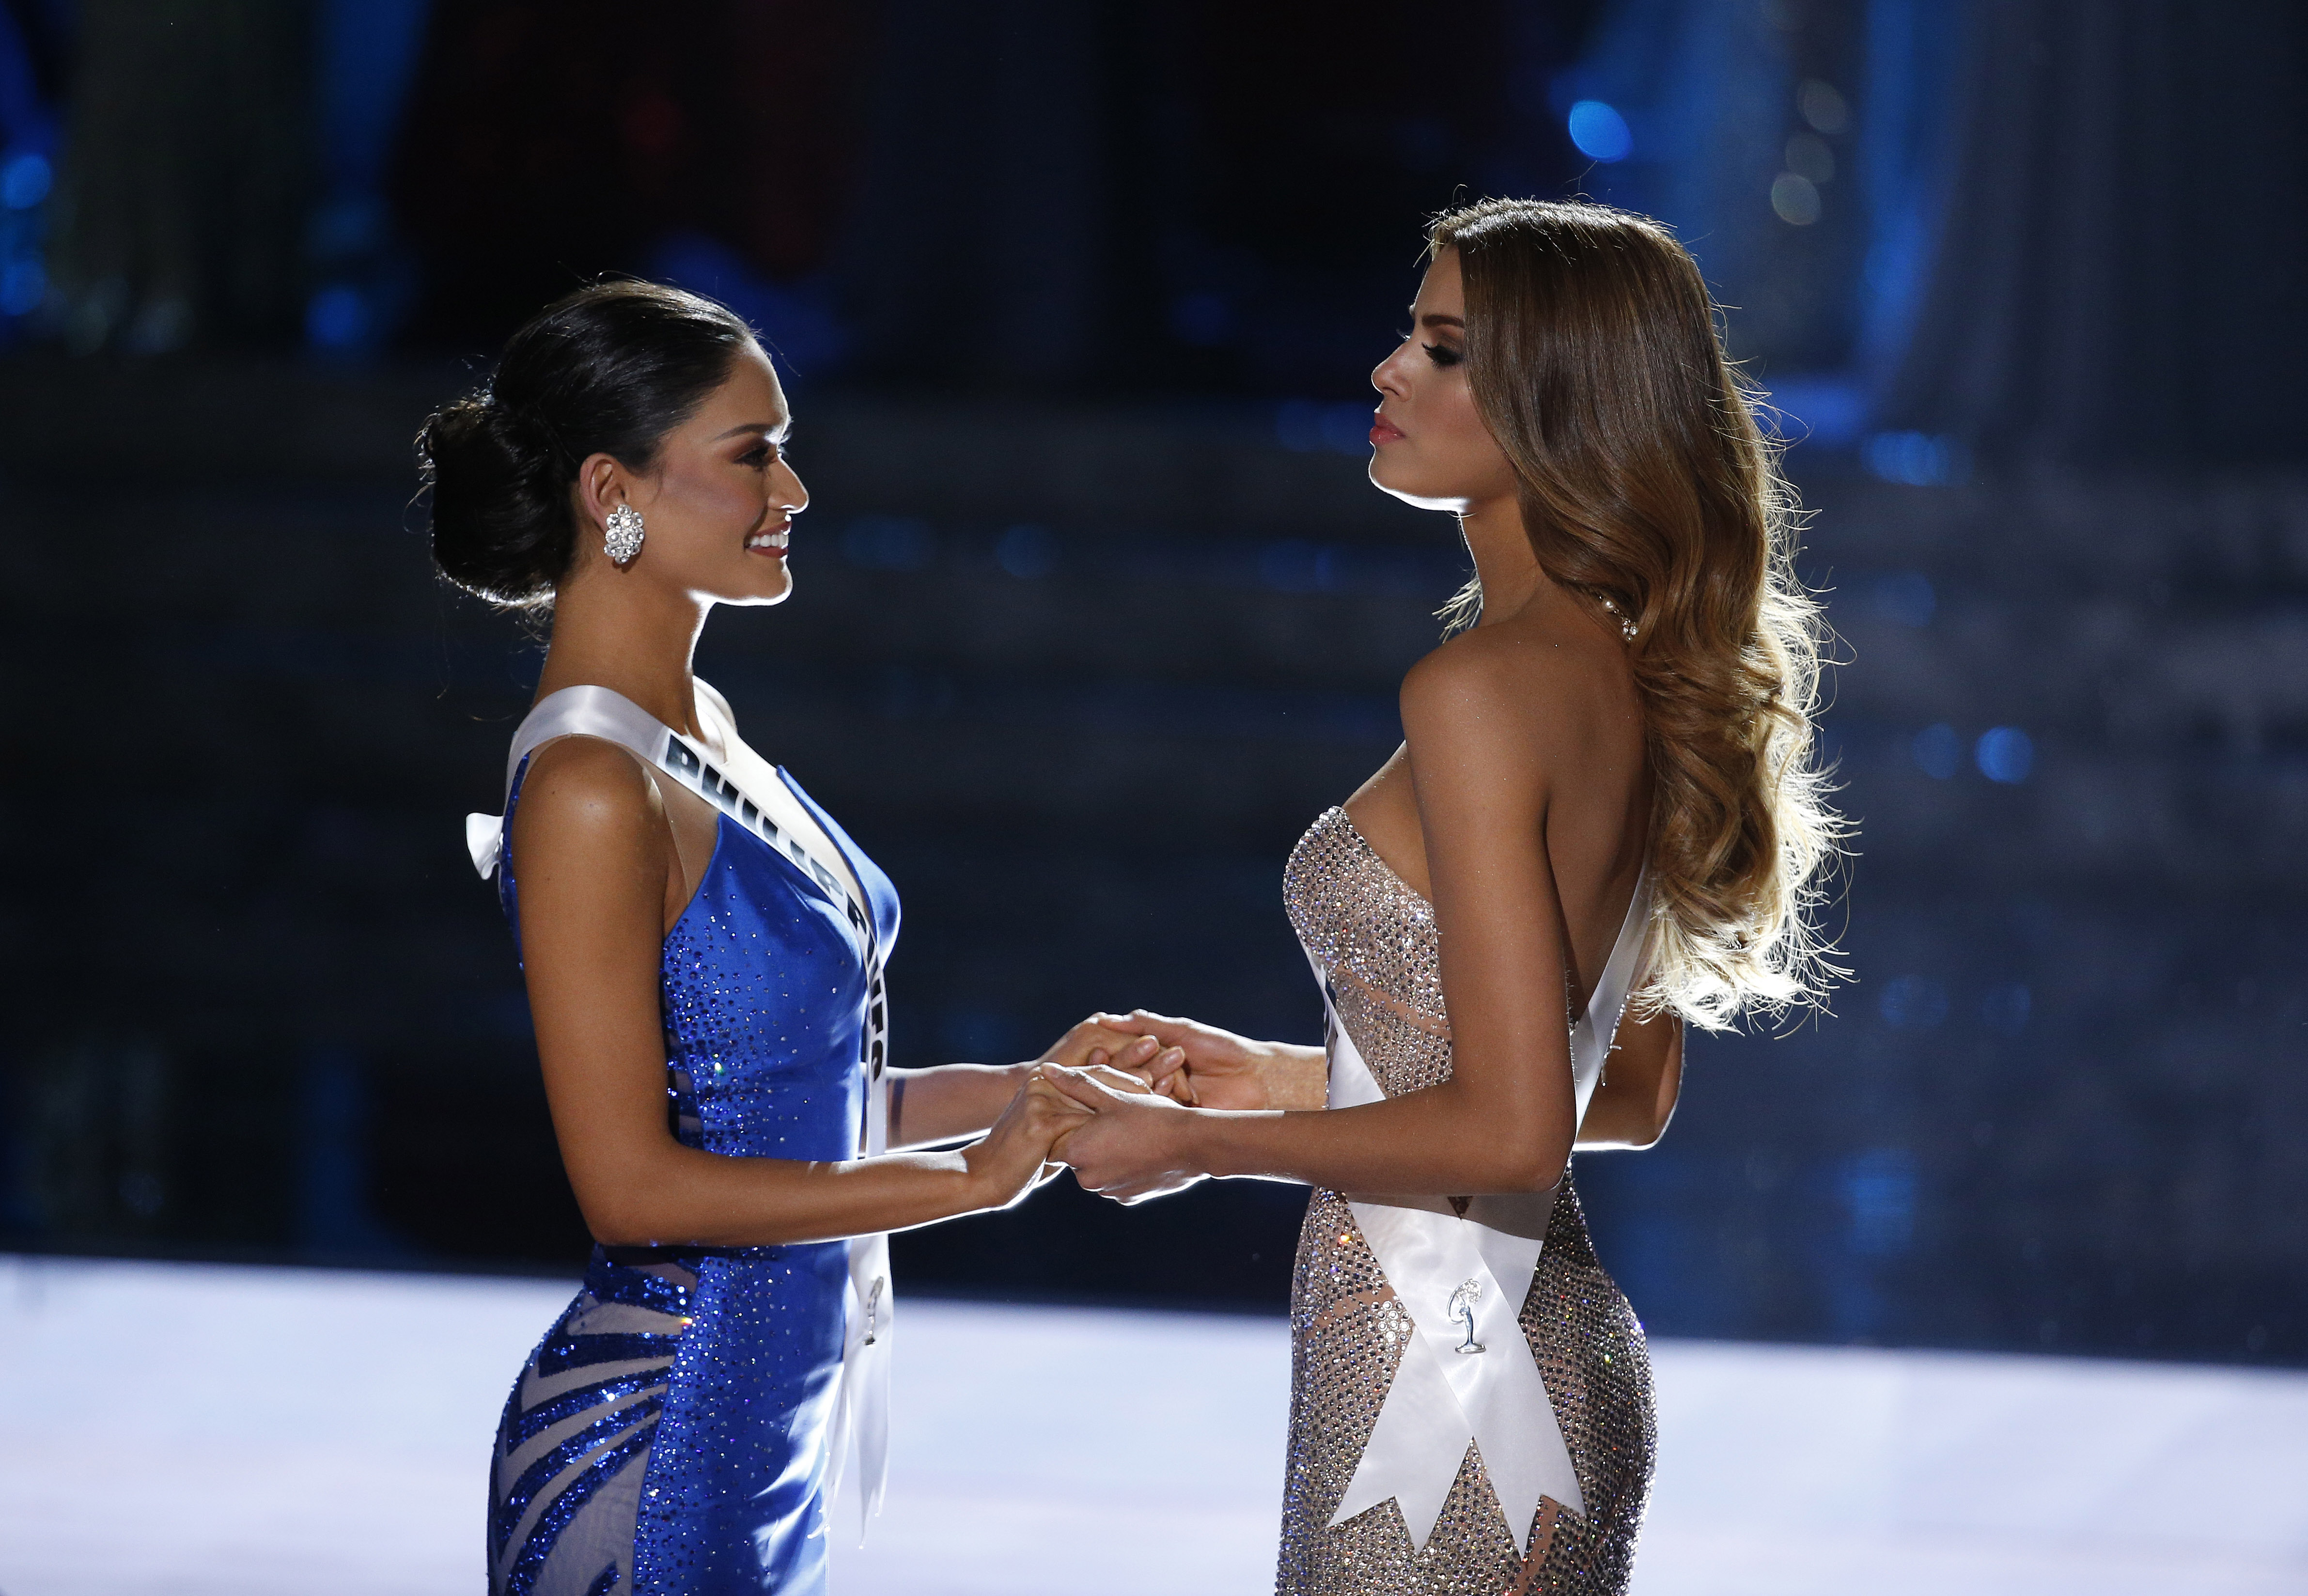 Miss Colombia Ariadna Gutierrez, right, and Miss Philippines Pia Alonzo Wurtzbach wait for the announcer to name the new Miss Universe at the Miss Universe pageant in Las Vegas on Dec. 20, 2015.